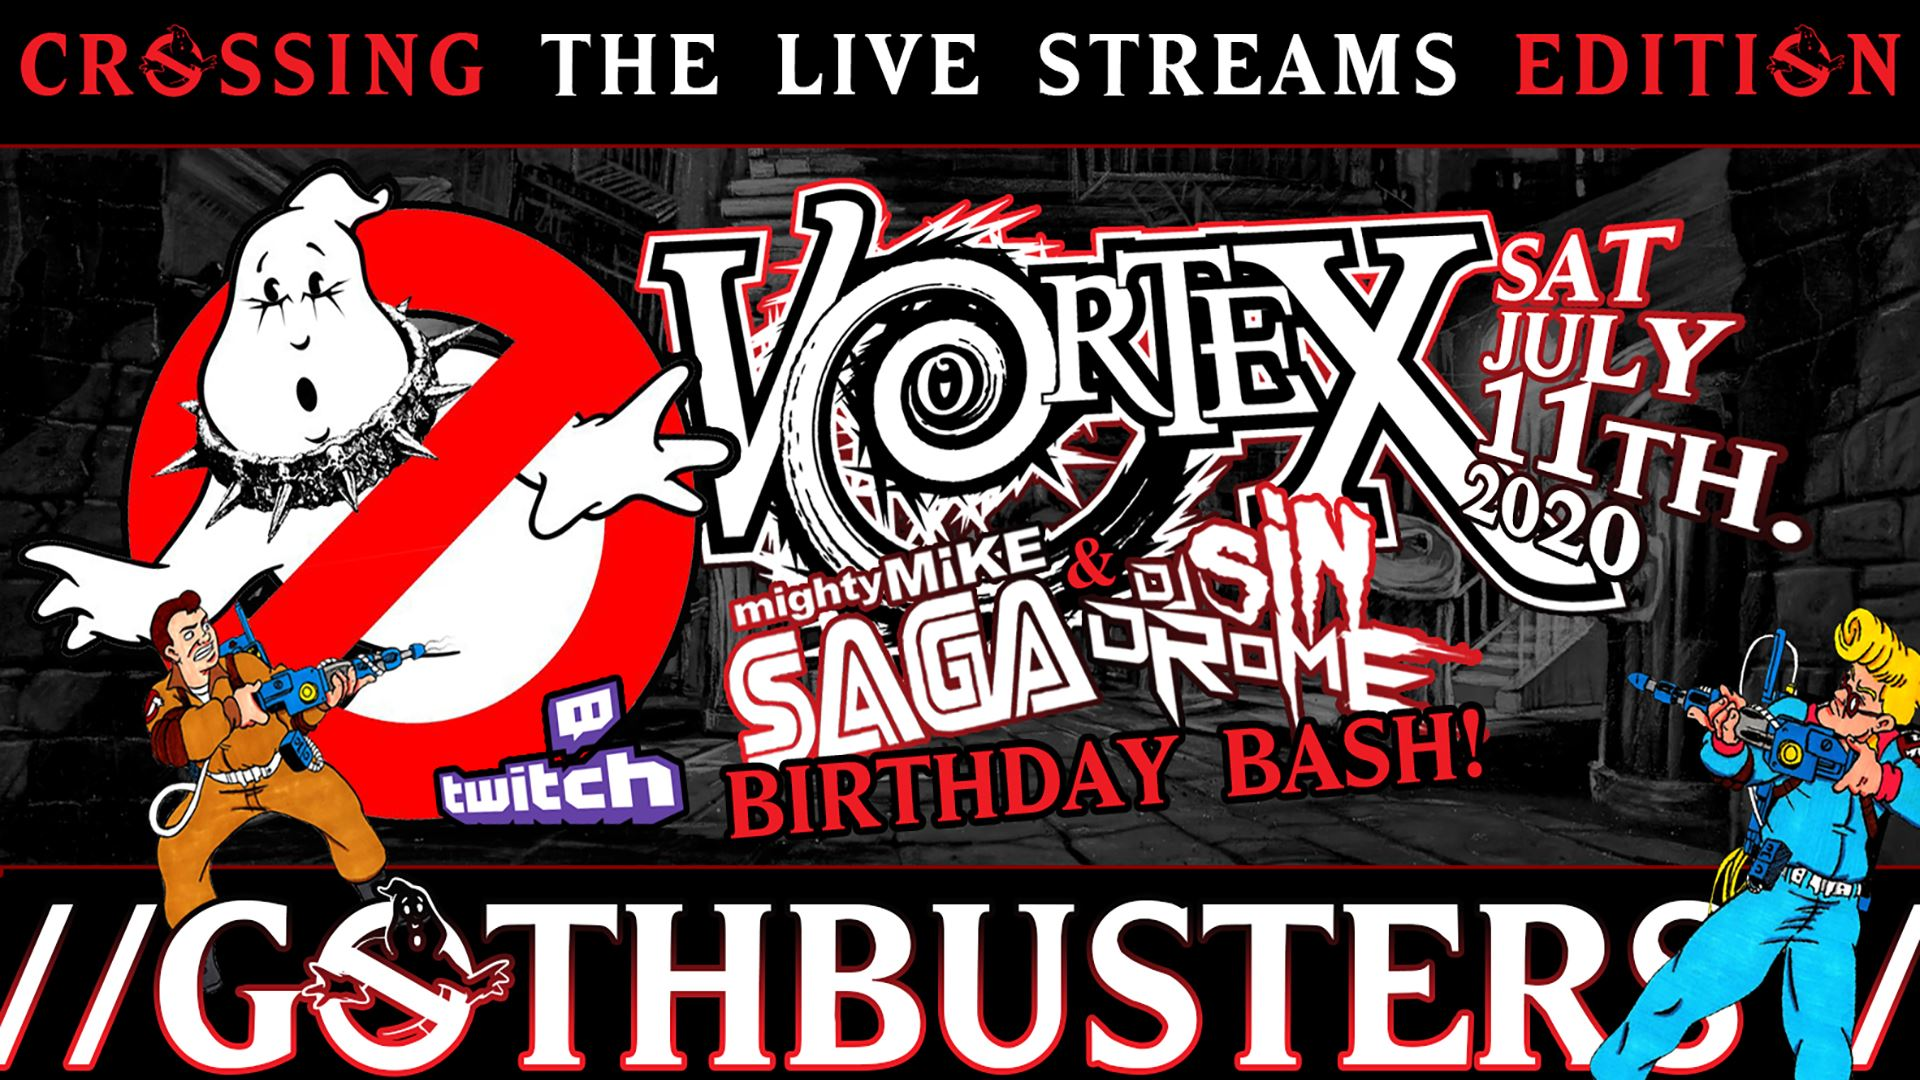 Vortex GothBusters - Crossing the Streams Edition!